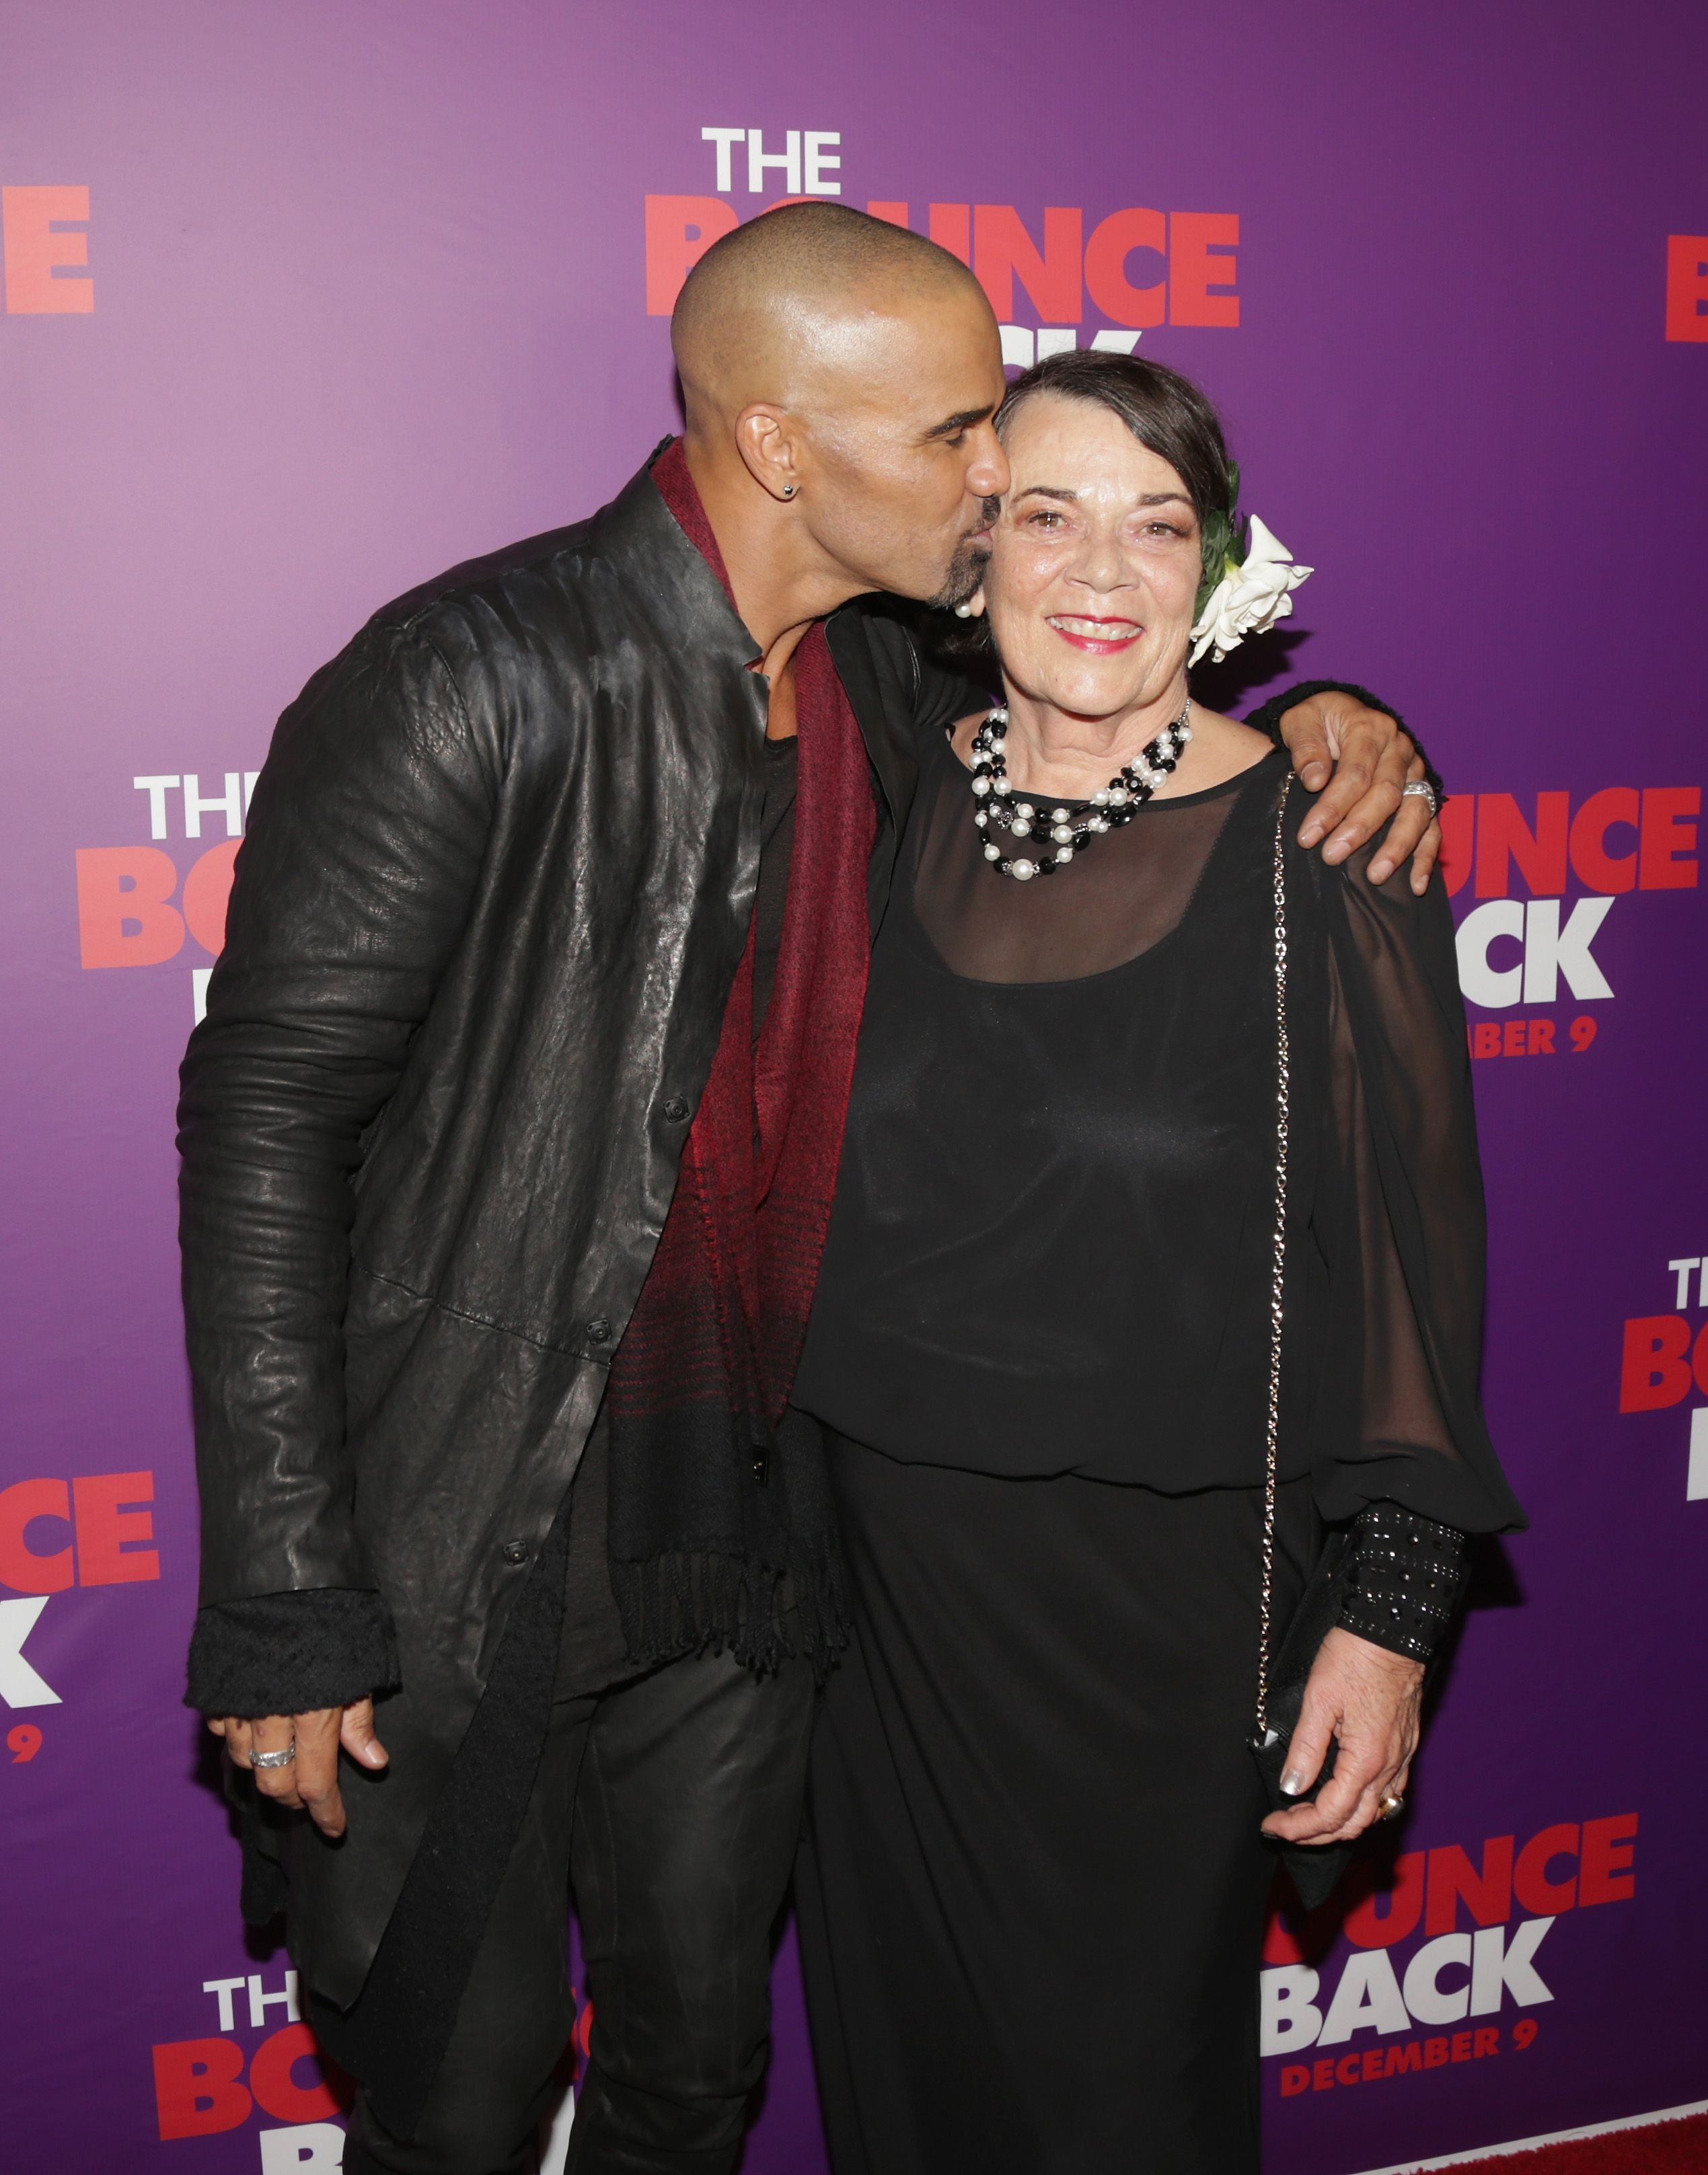 """Shemar Moore and his mother Marilyn Wilson at the premiere of """"The Bounce Back""""in 2016 in Los Angeles 